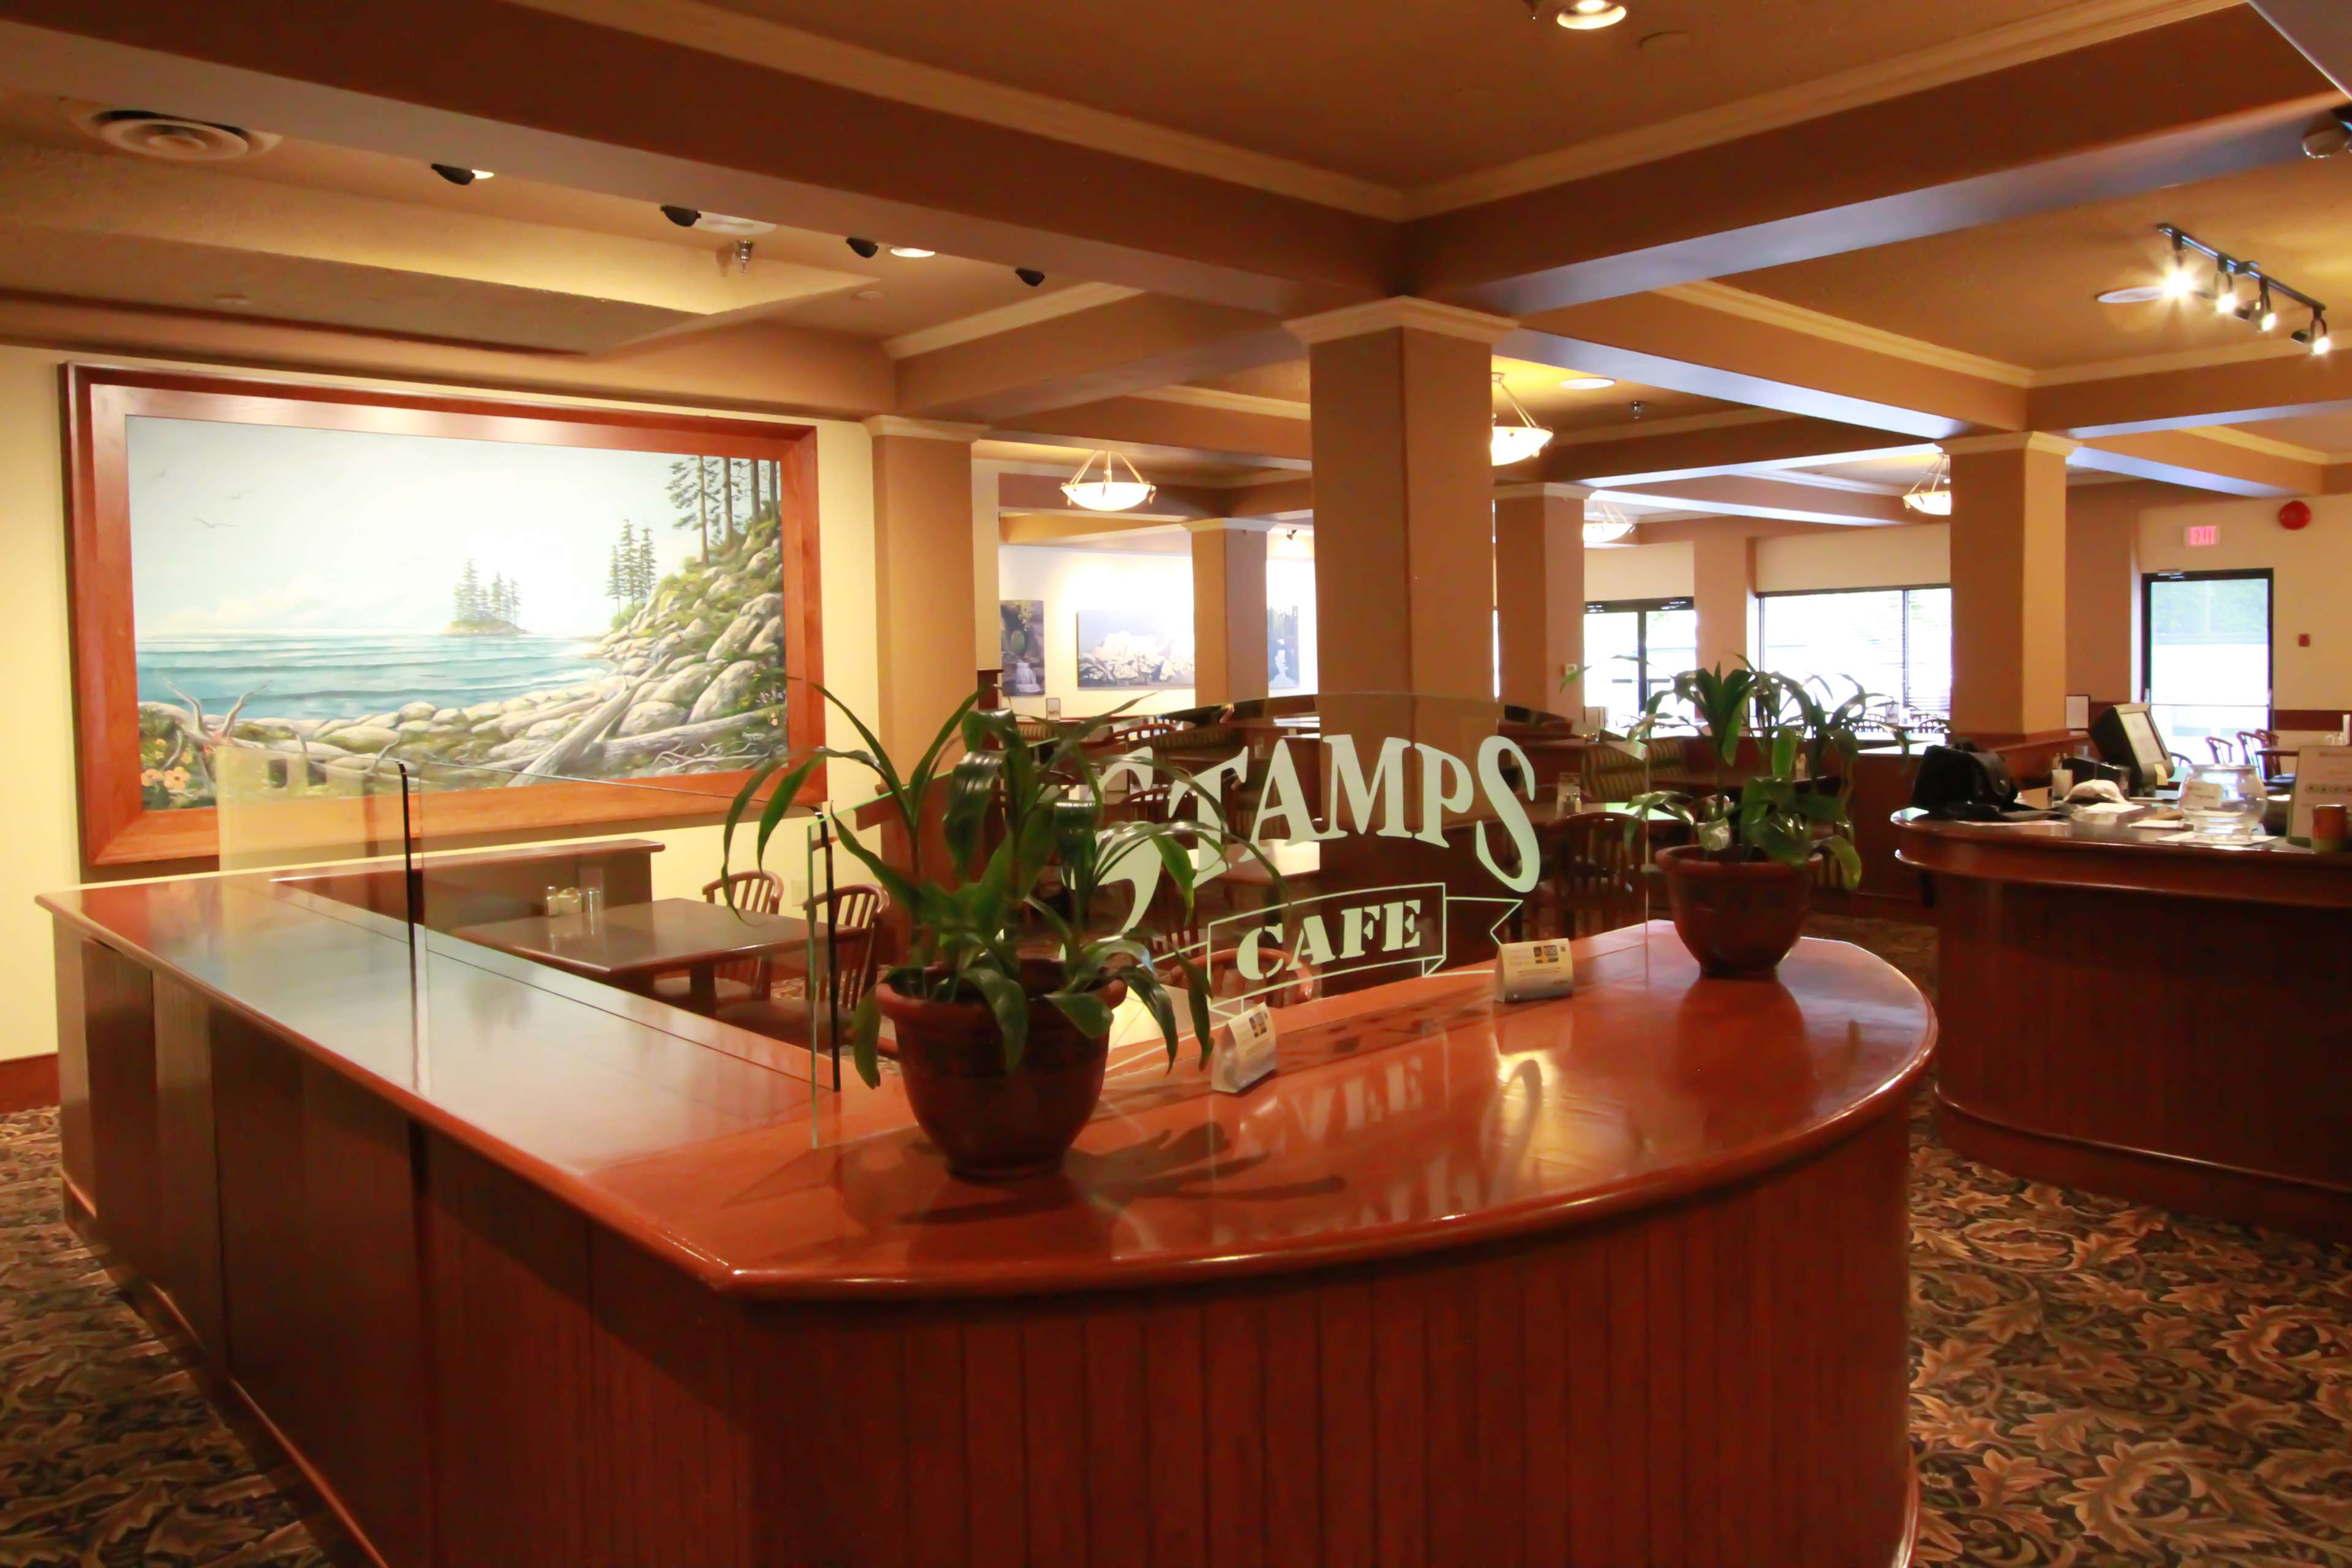 Best Western Plus Barclay Hotel in Port Alberni: Stamp's Cafe has photos and paintings of local attractions.